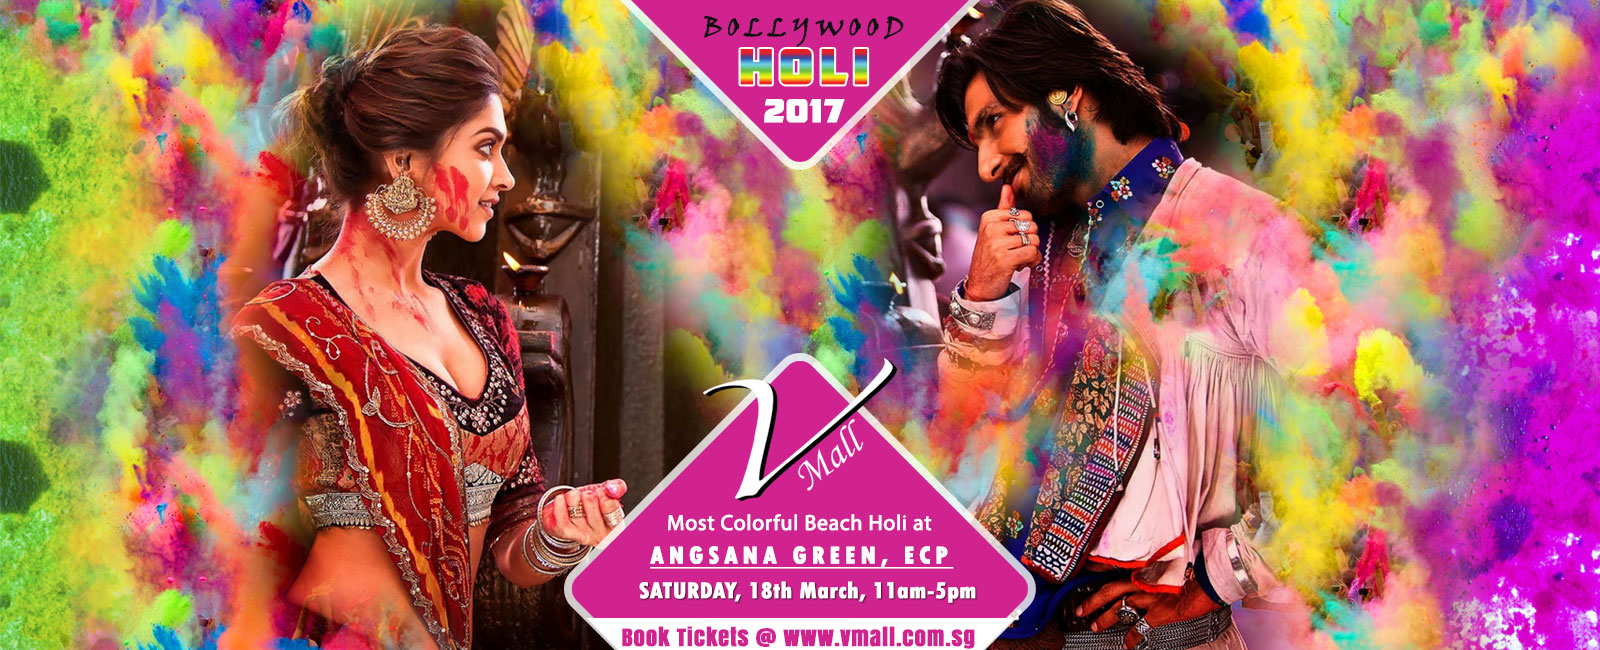 Bollywood Holi 2017